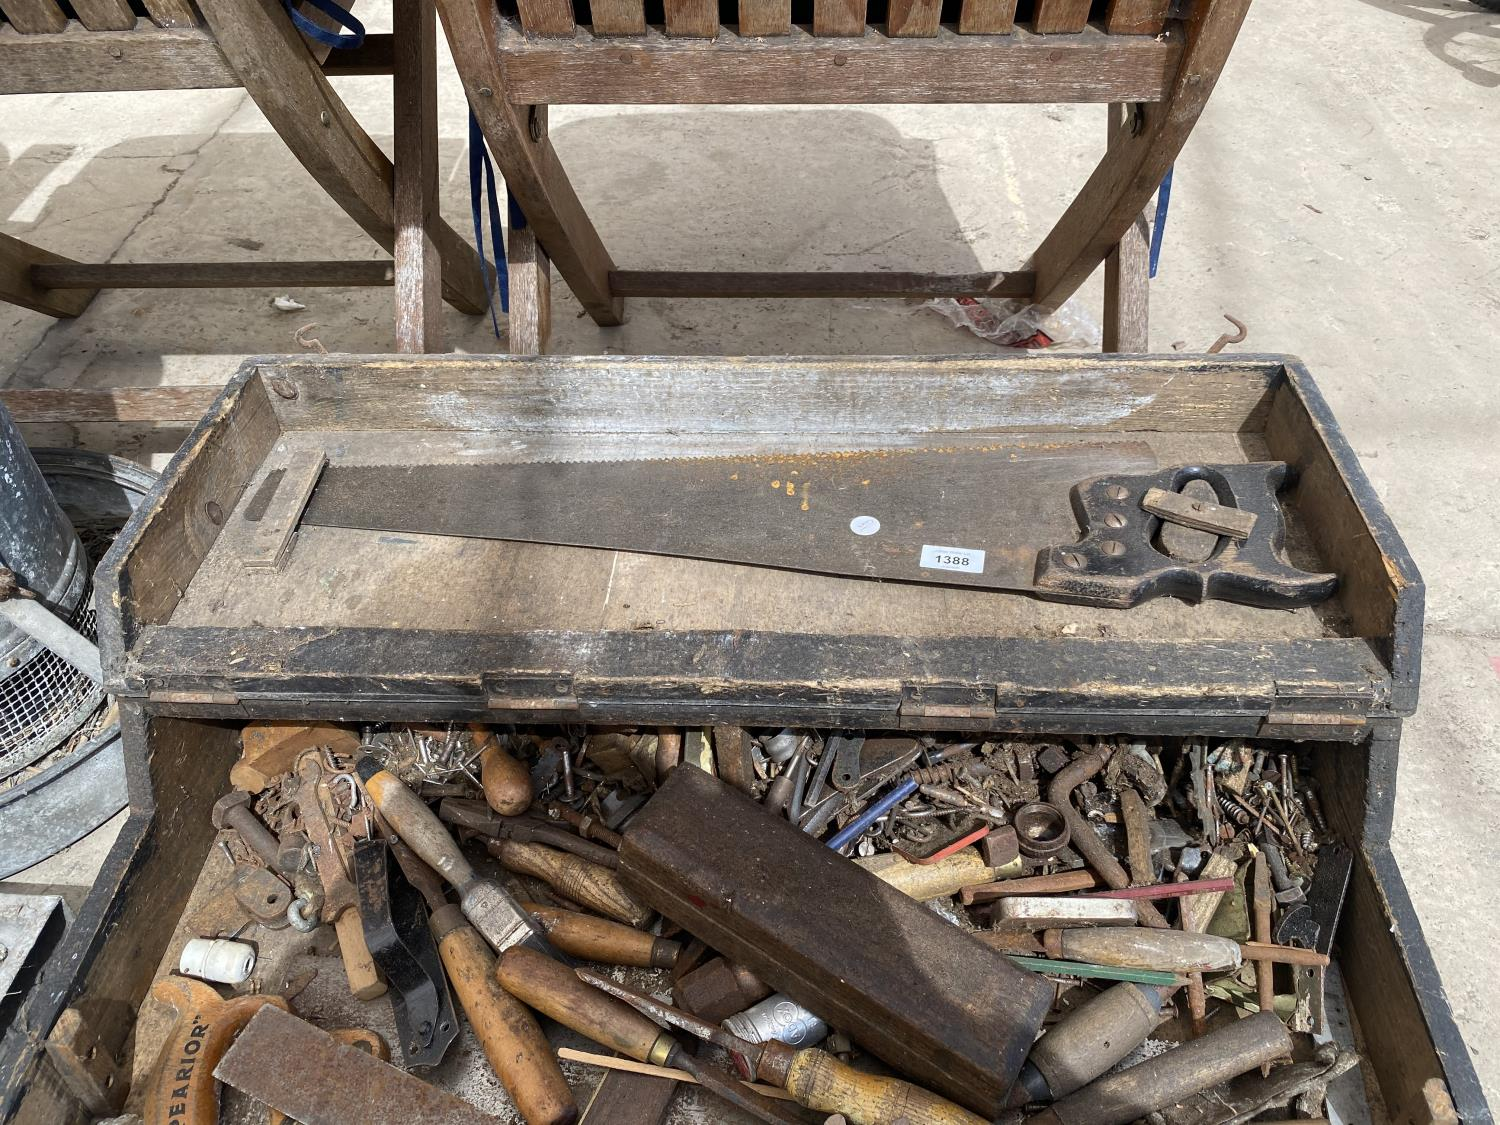 A VINTAGE JOINERS CHEST WITH AN ASSORTMENT OF TOOLS - Image 4 of 4